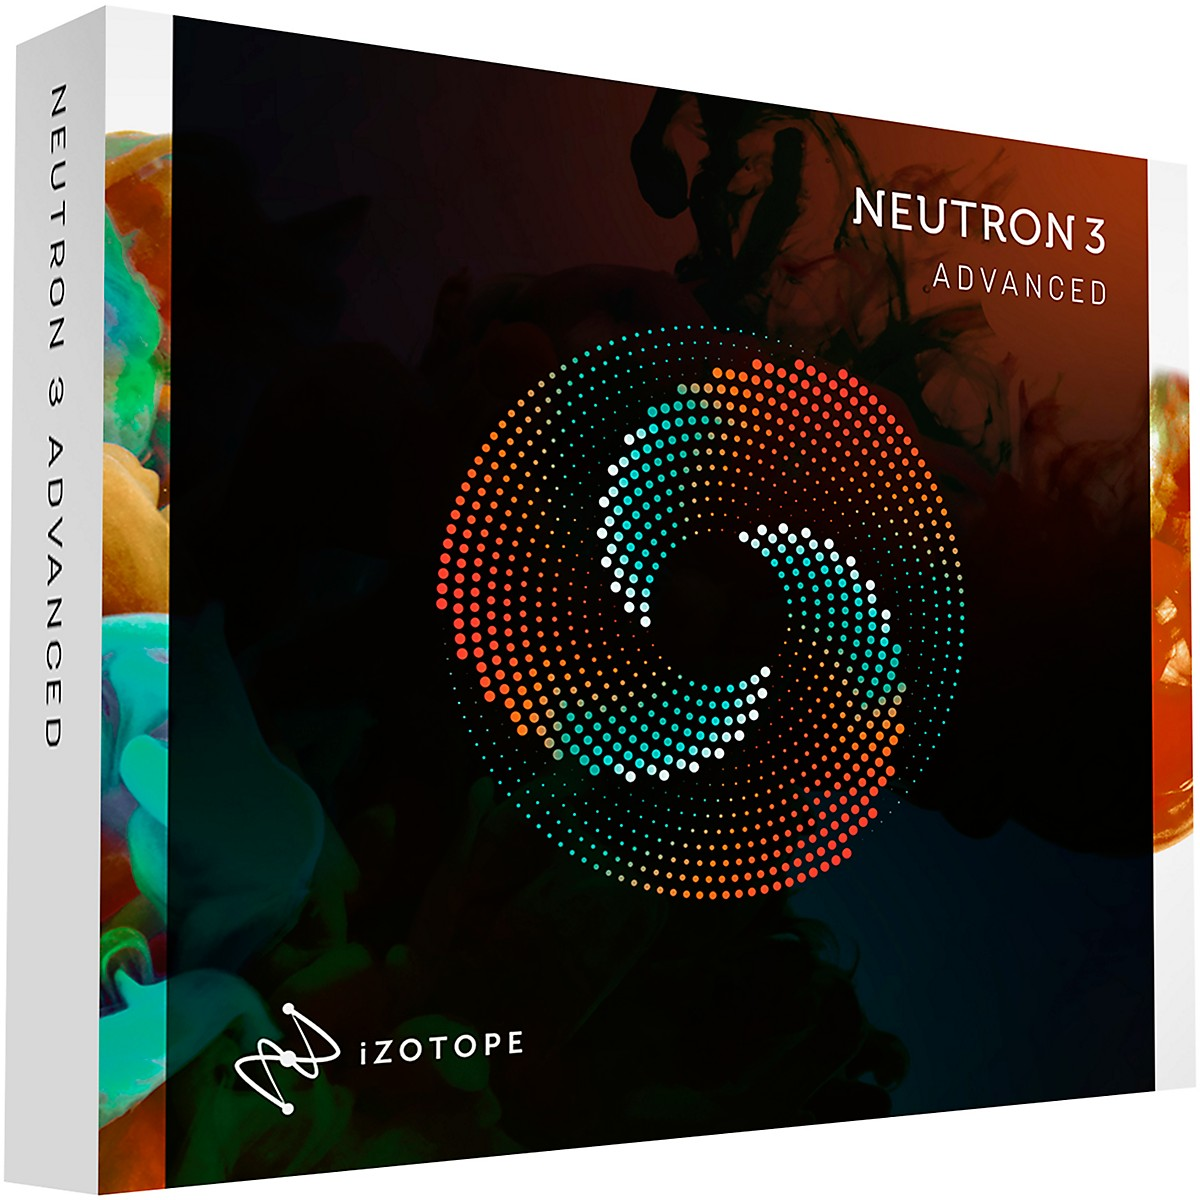 iZotope Neutron 3 Advanced: Crossgrade from Tonal Balance Control 2 (Software Download)